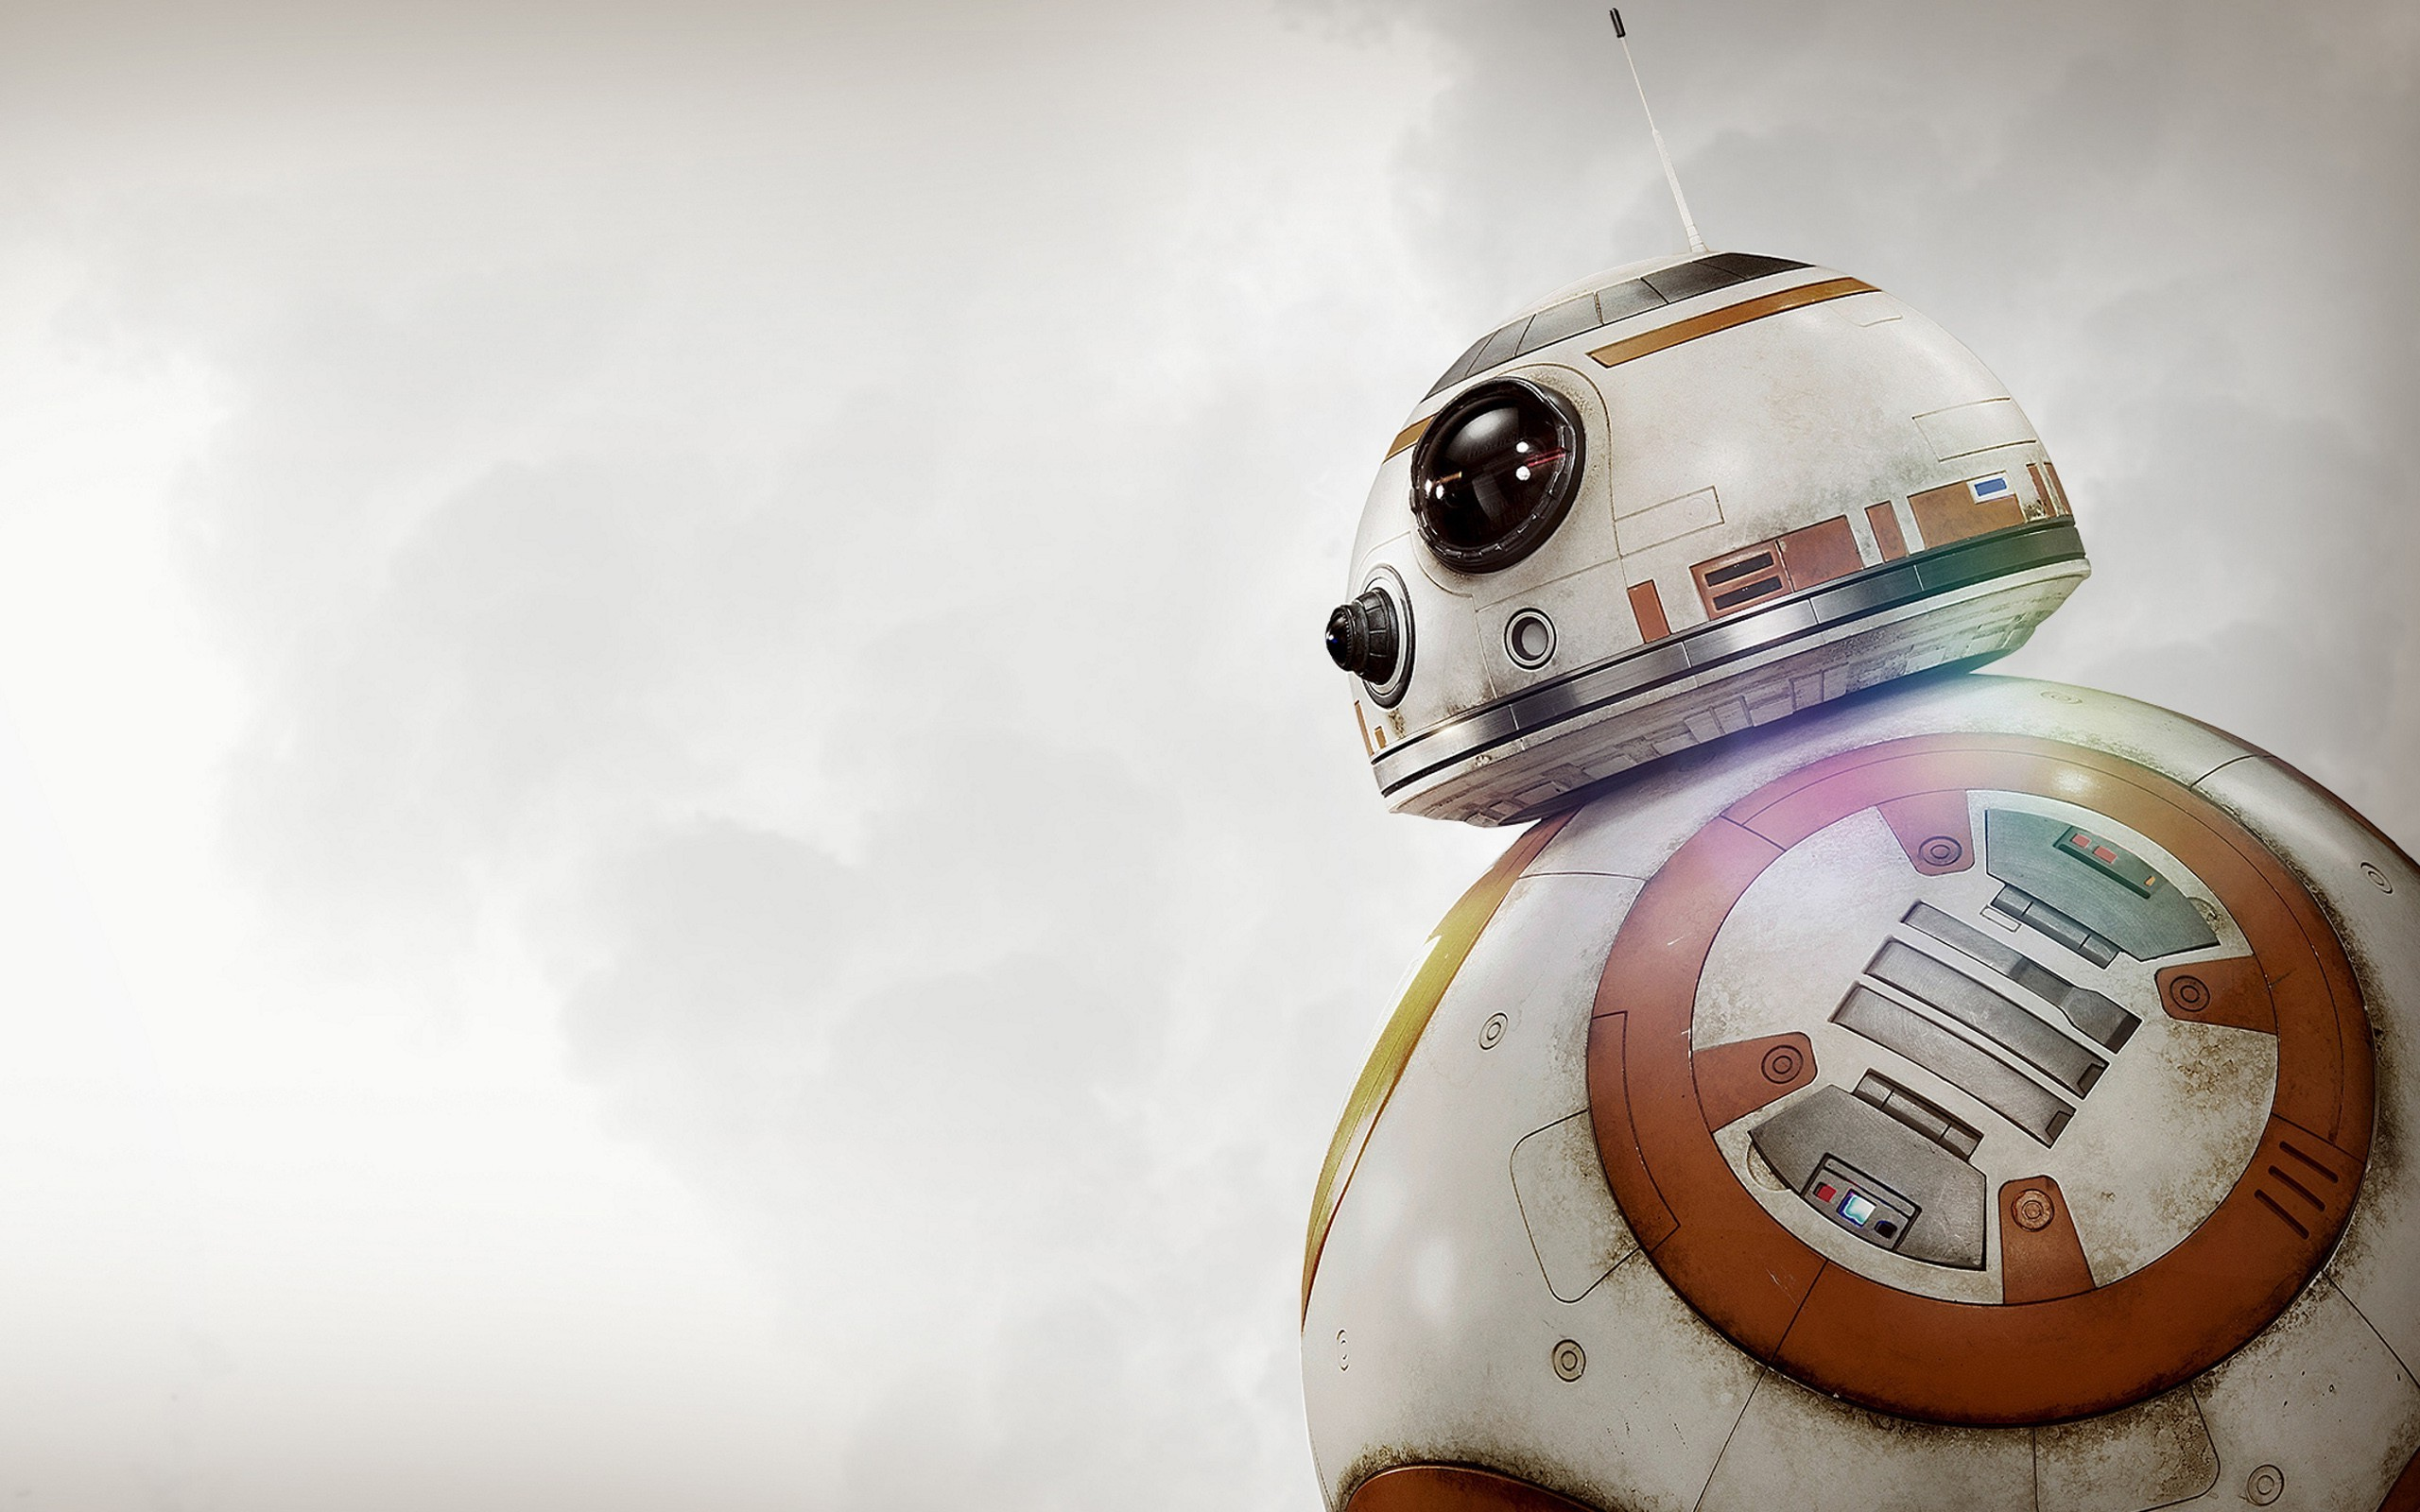 BB 8 Star Wars The Force Awakens Robot Science Fiction Star 2560x1600